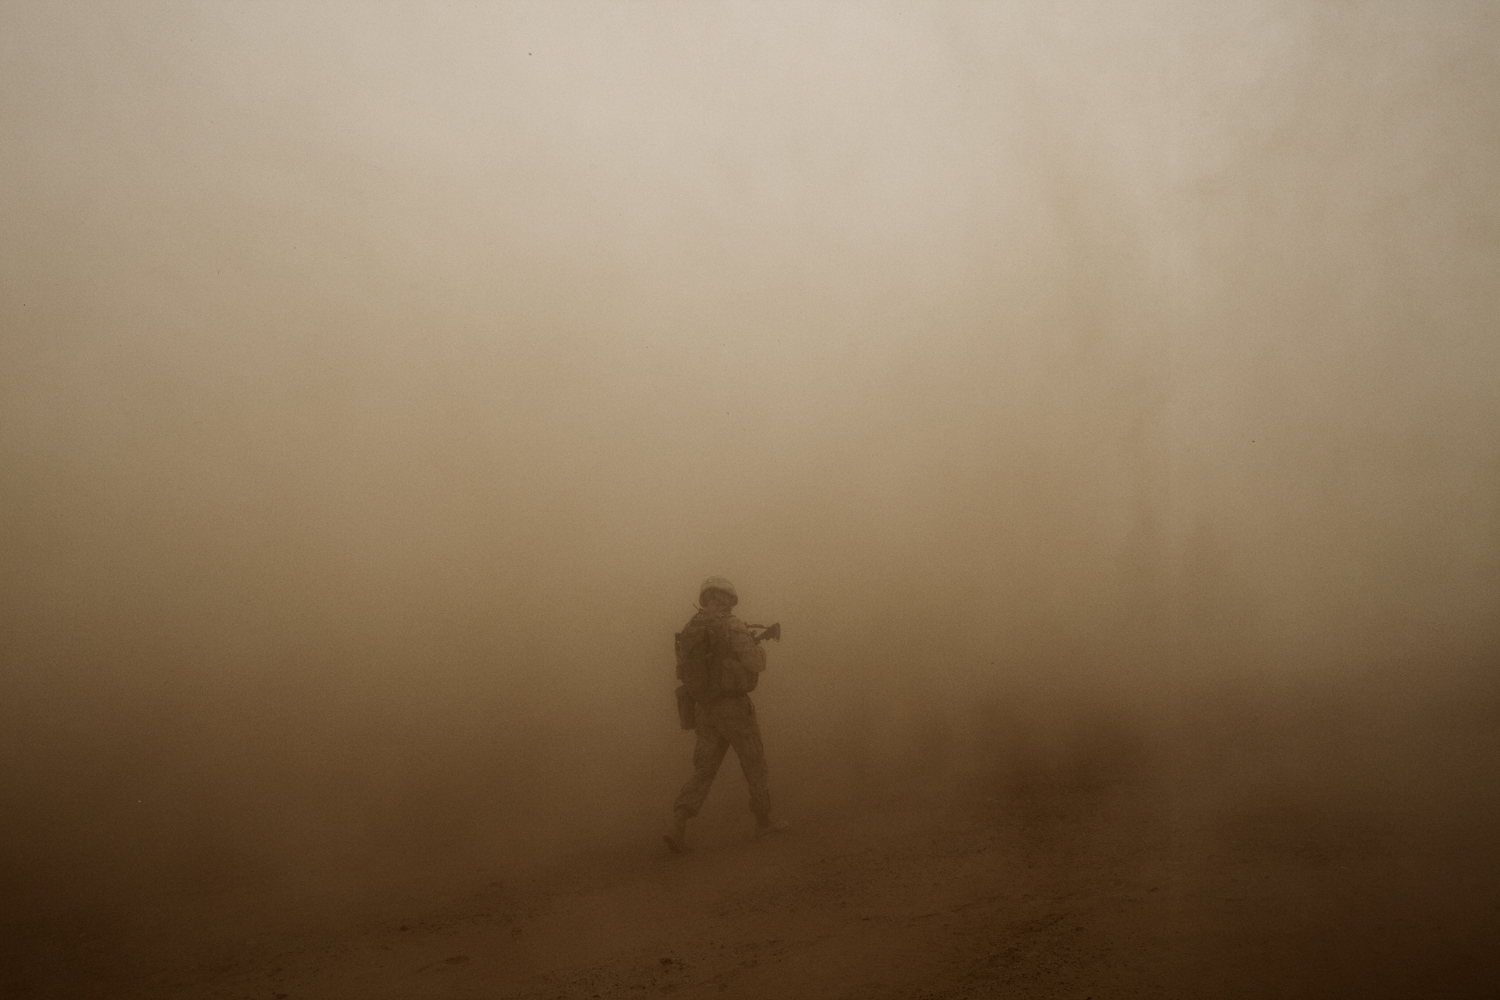 A U.S. Marine walks in the dusty rotor wash of a helicopter in Marja District, Helmand Province, Afghanistan.